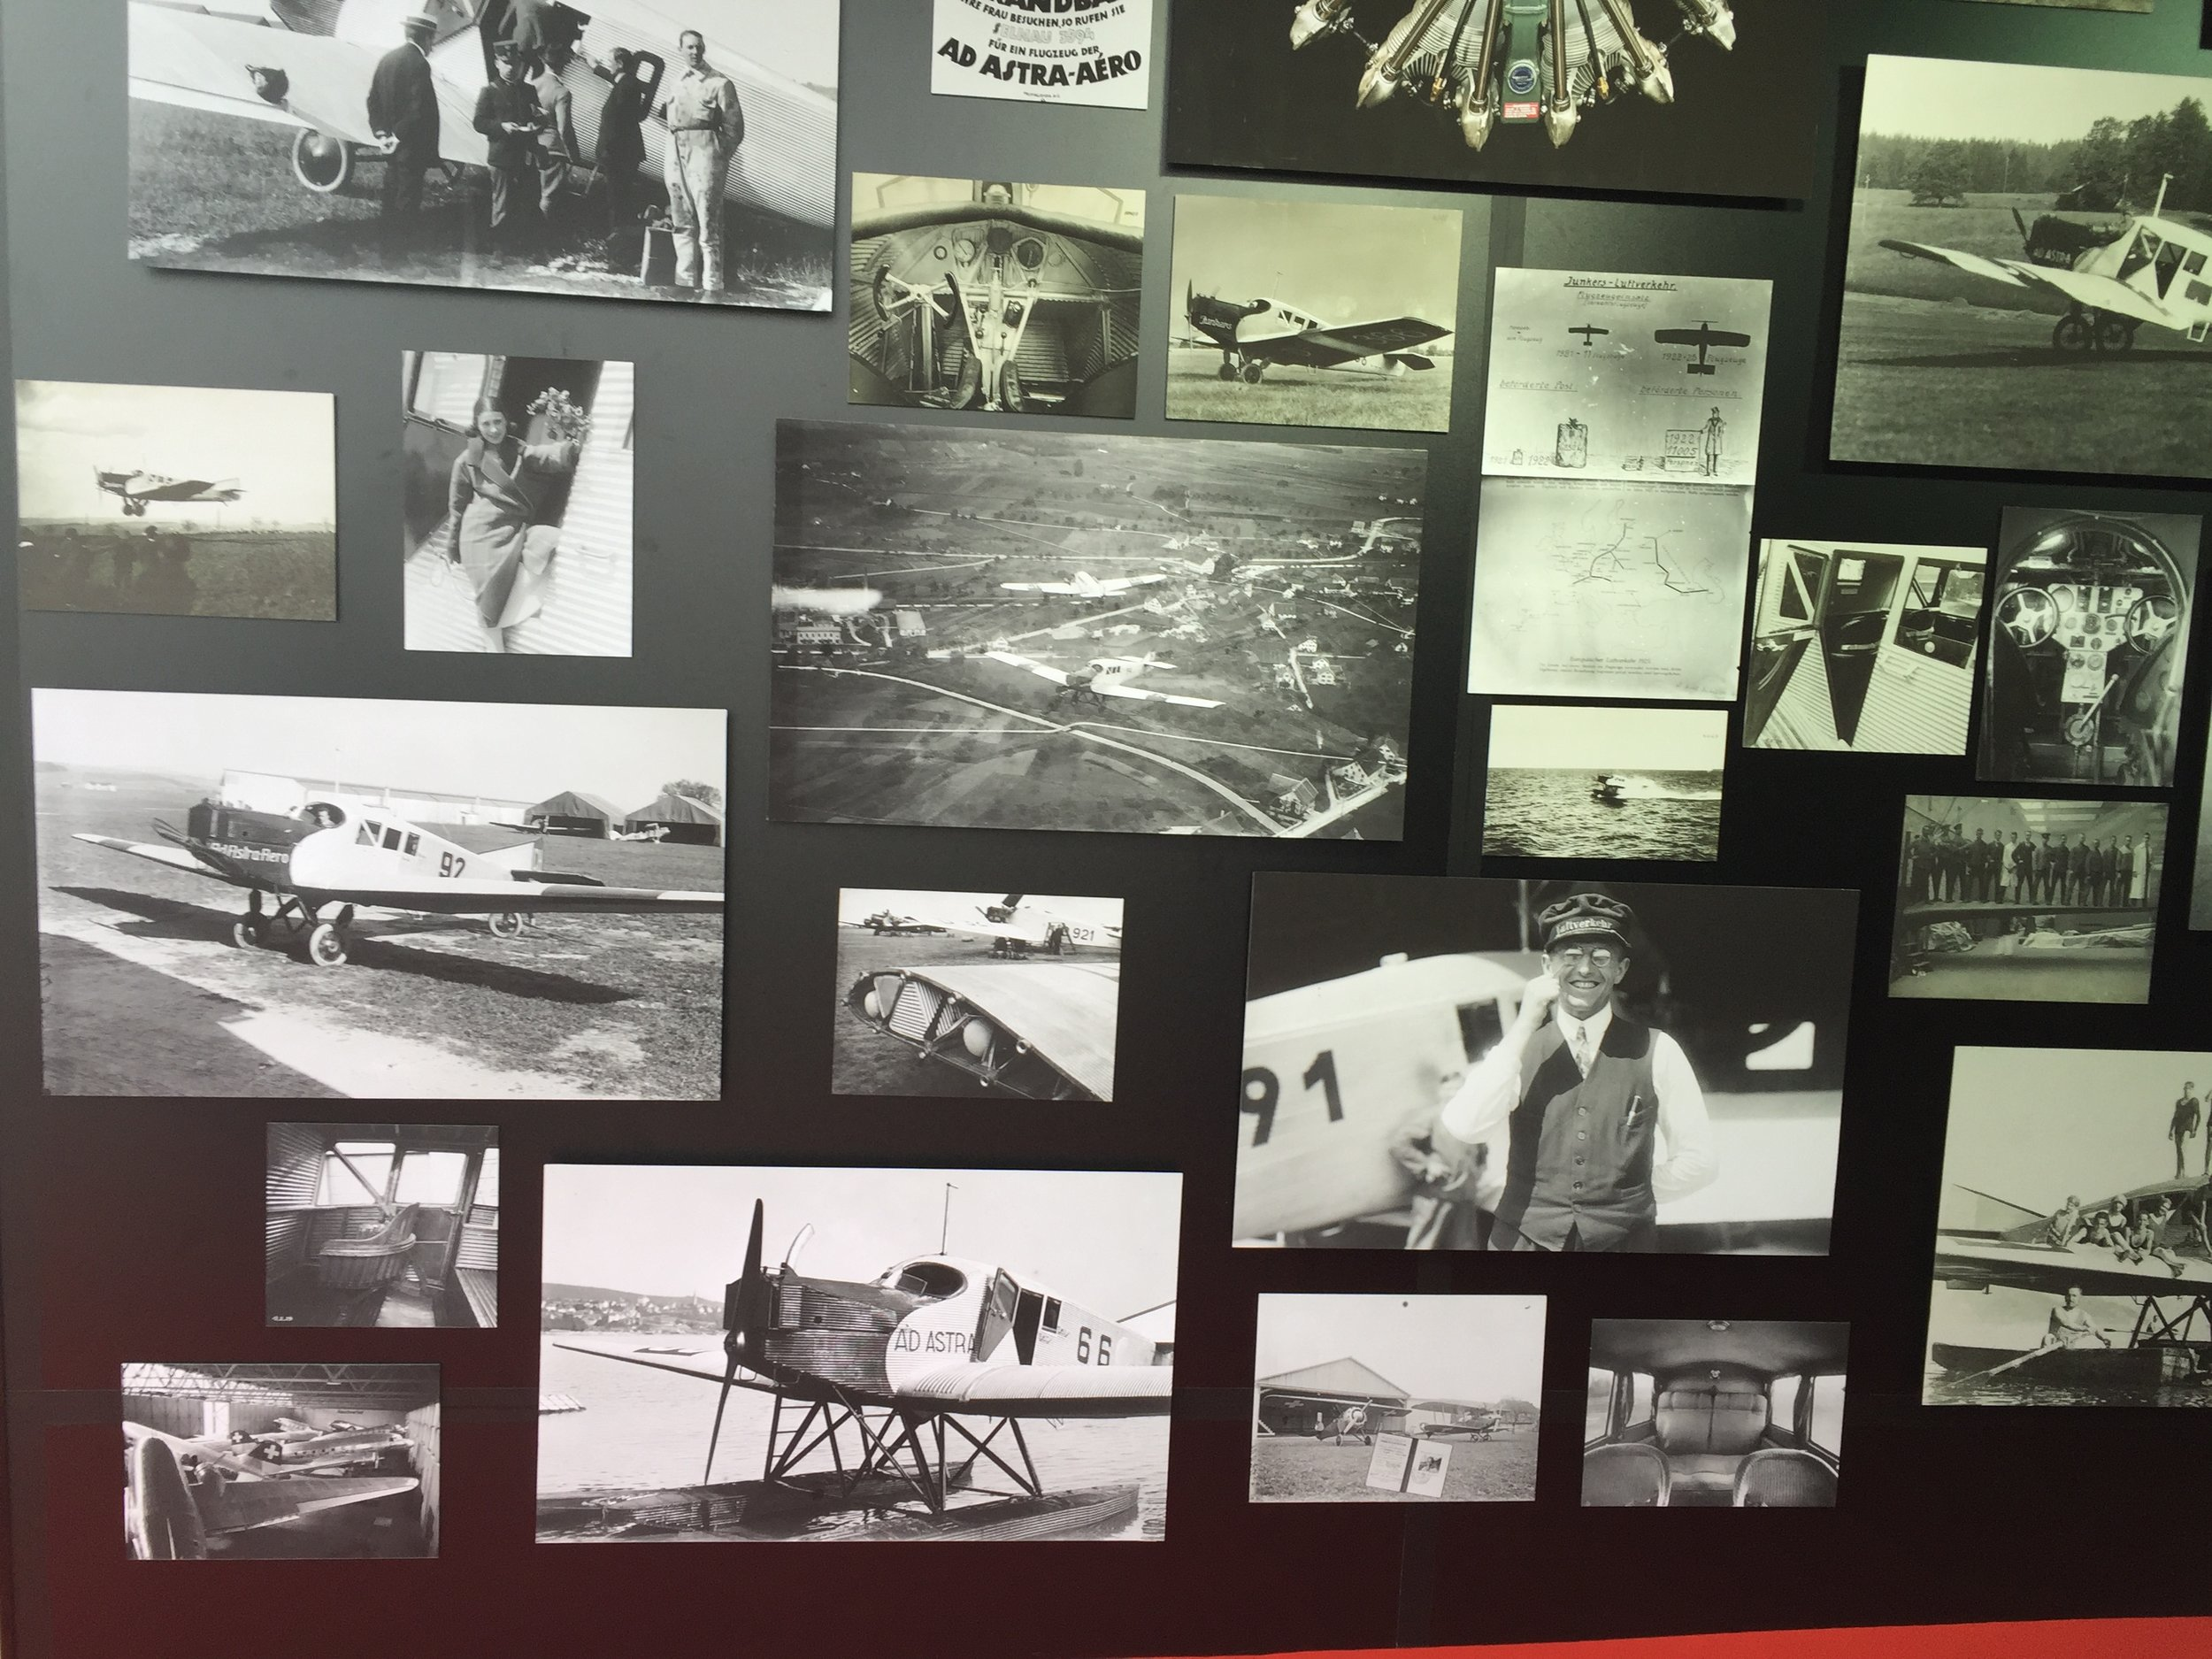 Some historical pictures of the origina Junkers F13 - in fact, among the guests invited to the event were a direct descendant of Otto Junkers and a 90-year old man that had once flown in the Junkers F13 as a child!